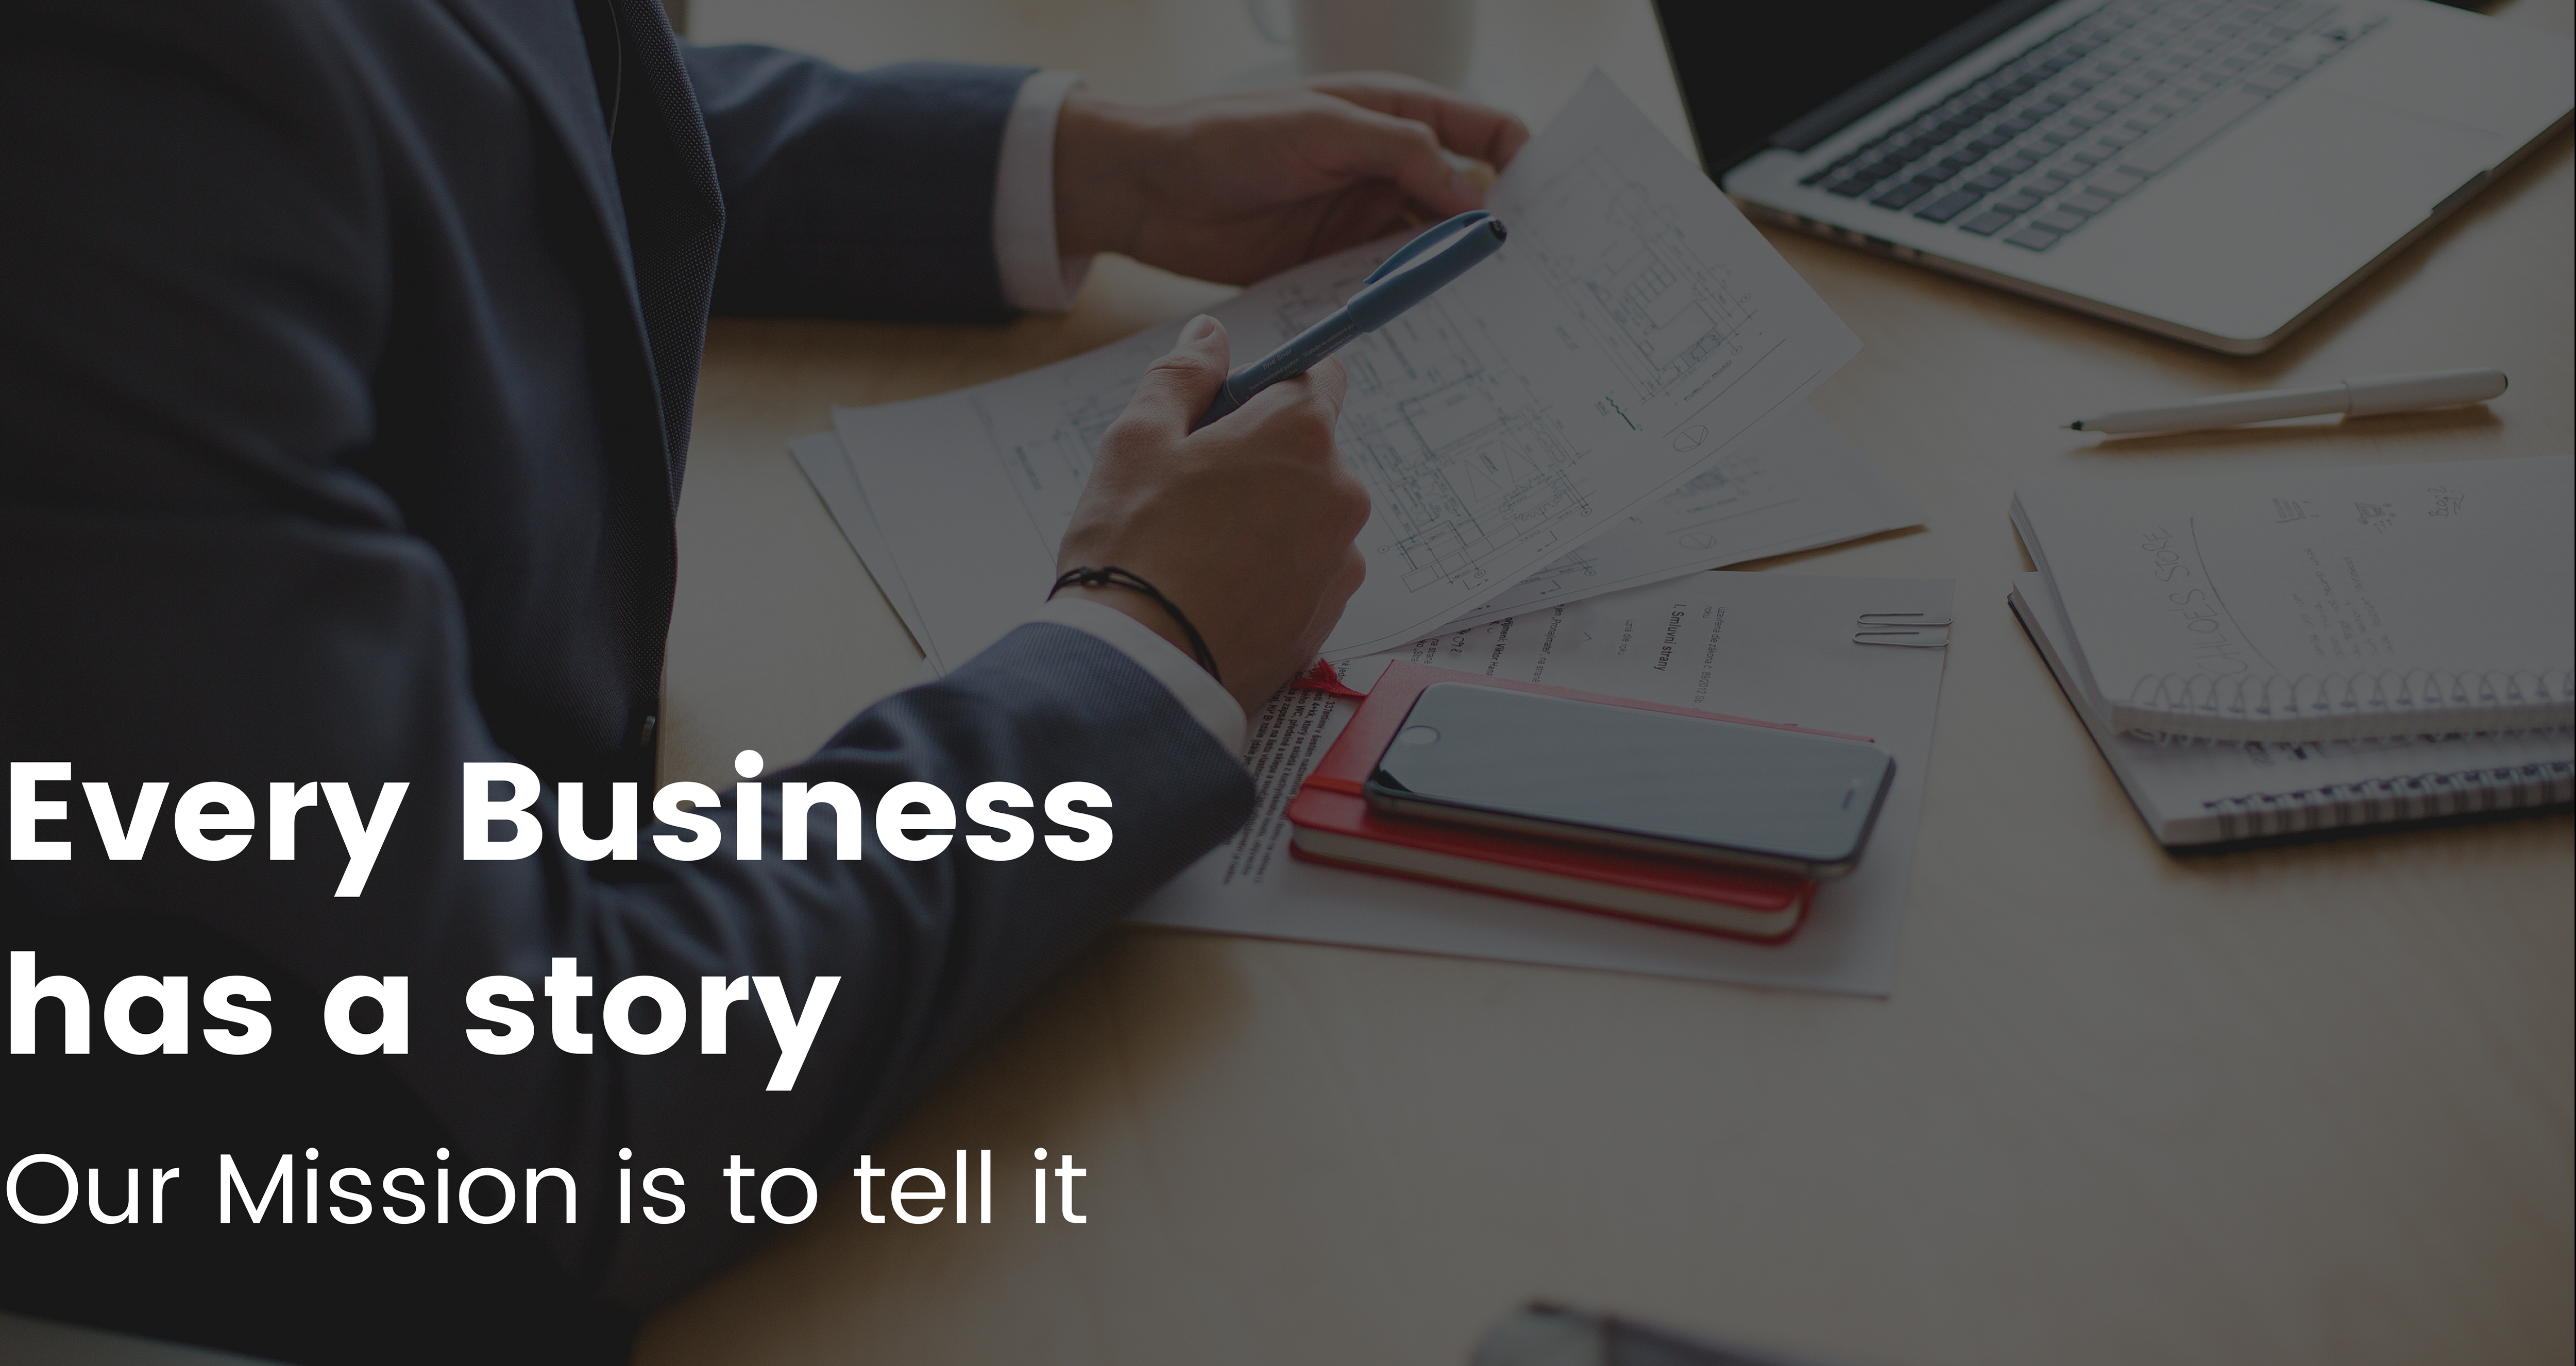 EVERY BUSINESS HAS A STORY TO TELL MKM AGENCY